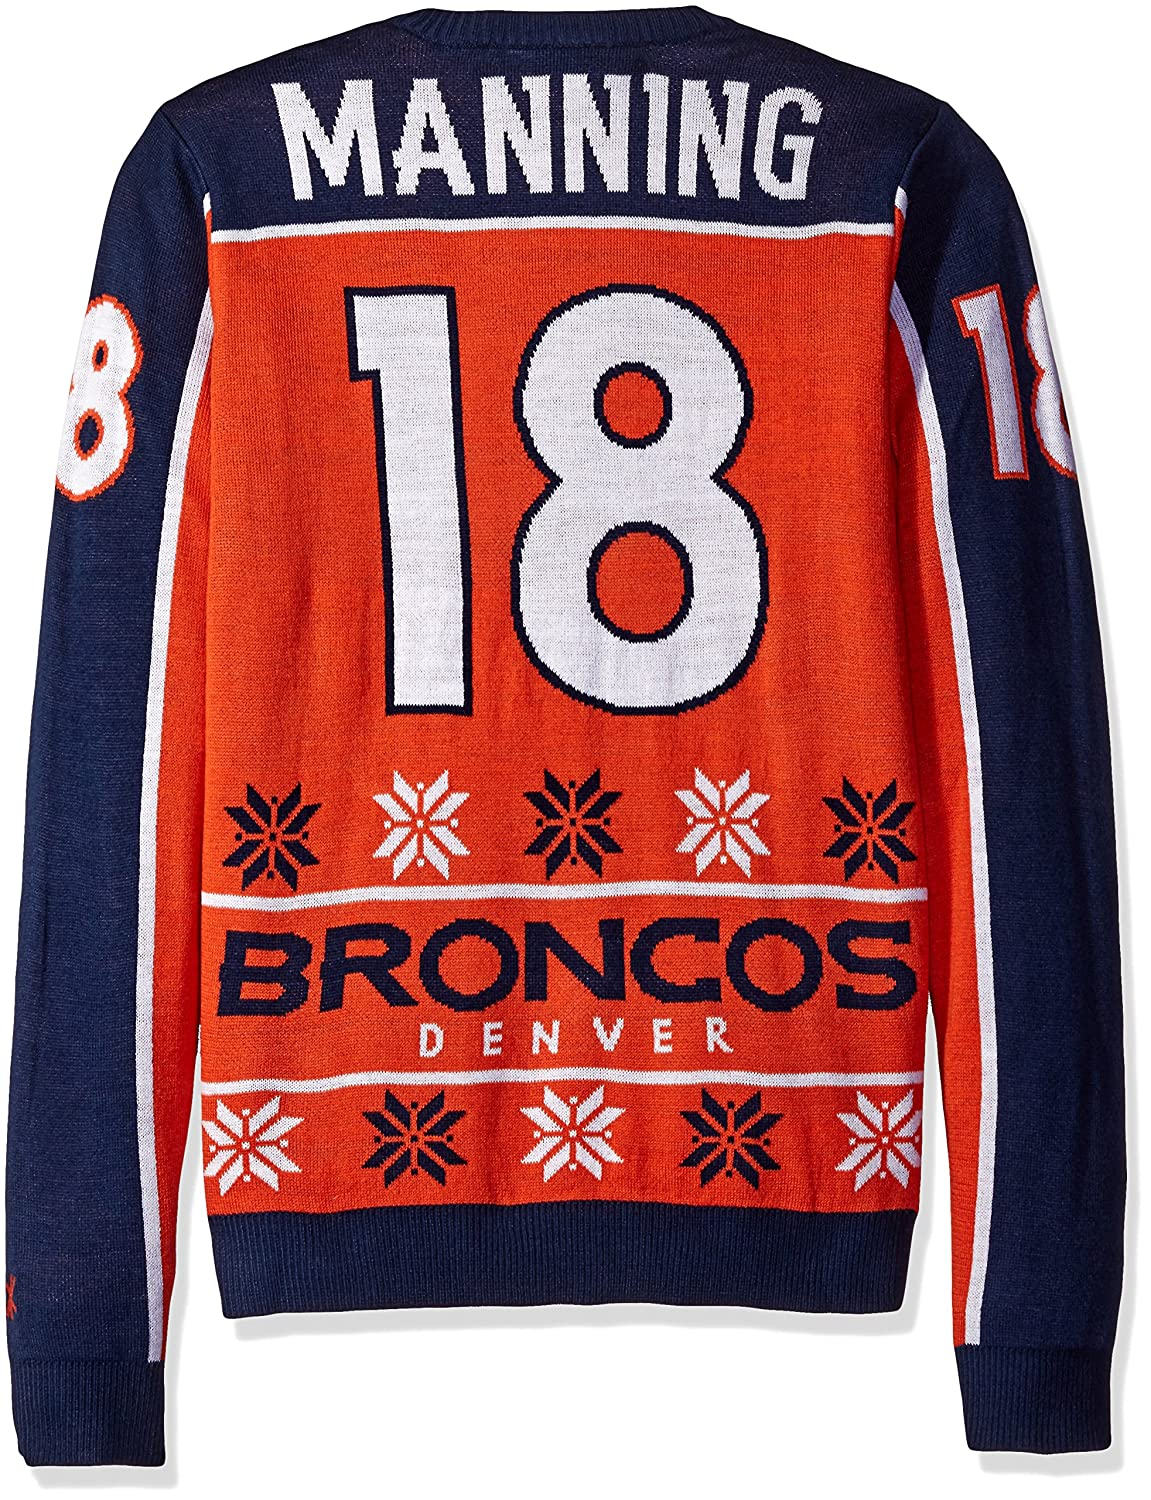 FOCO NFL Mens New York Giants Beckham O #13 2015 Player Ugly Sweater